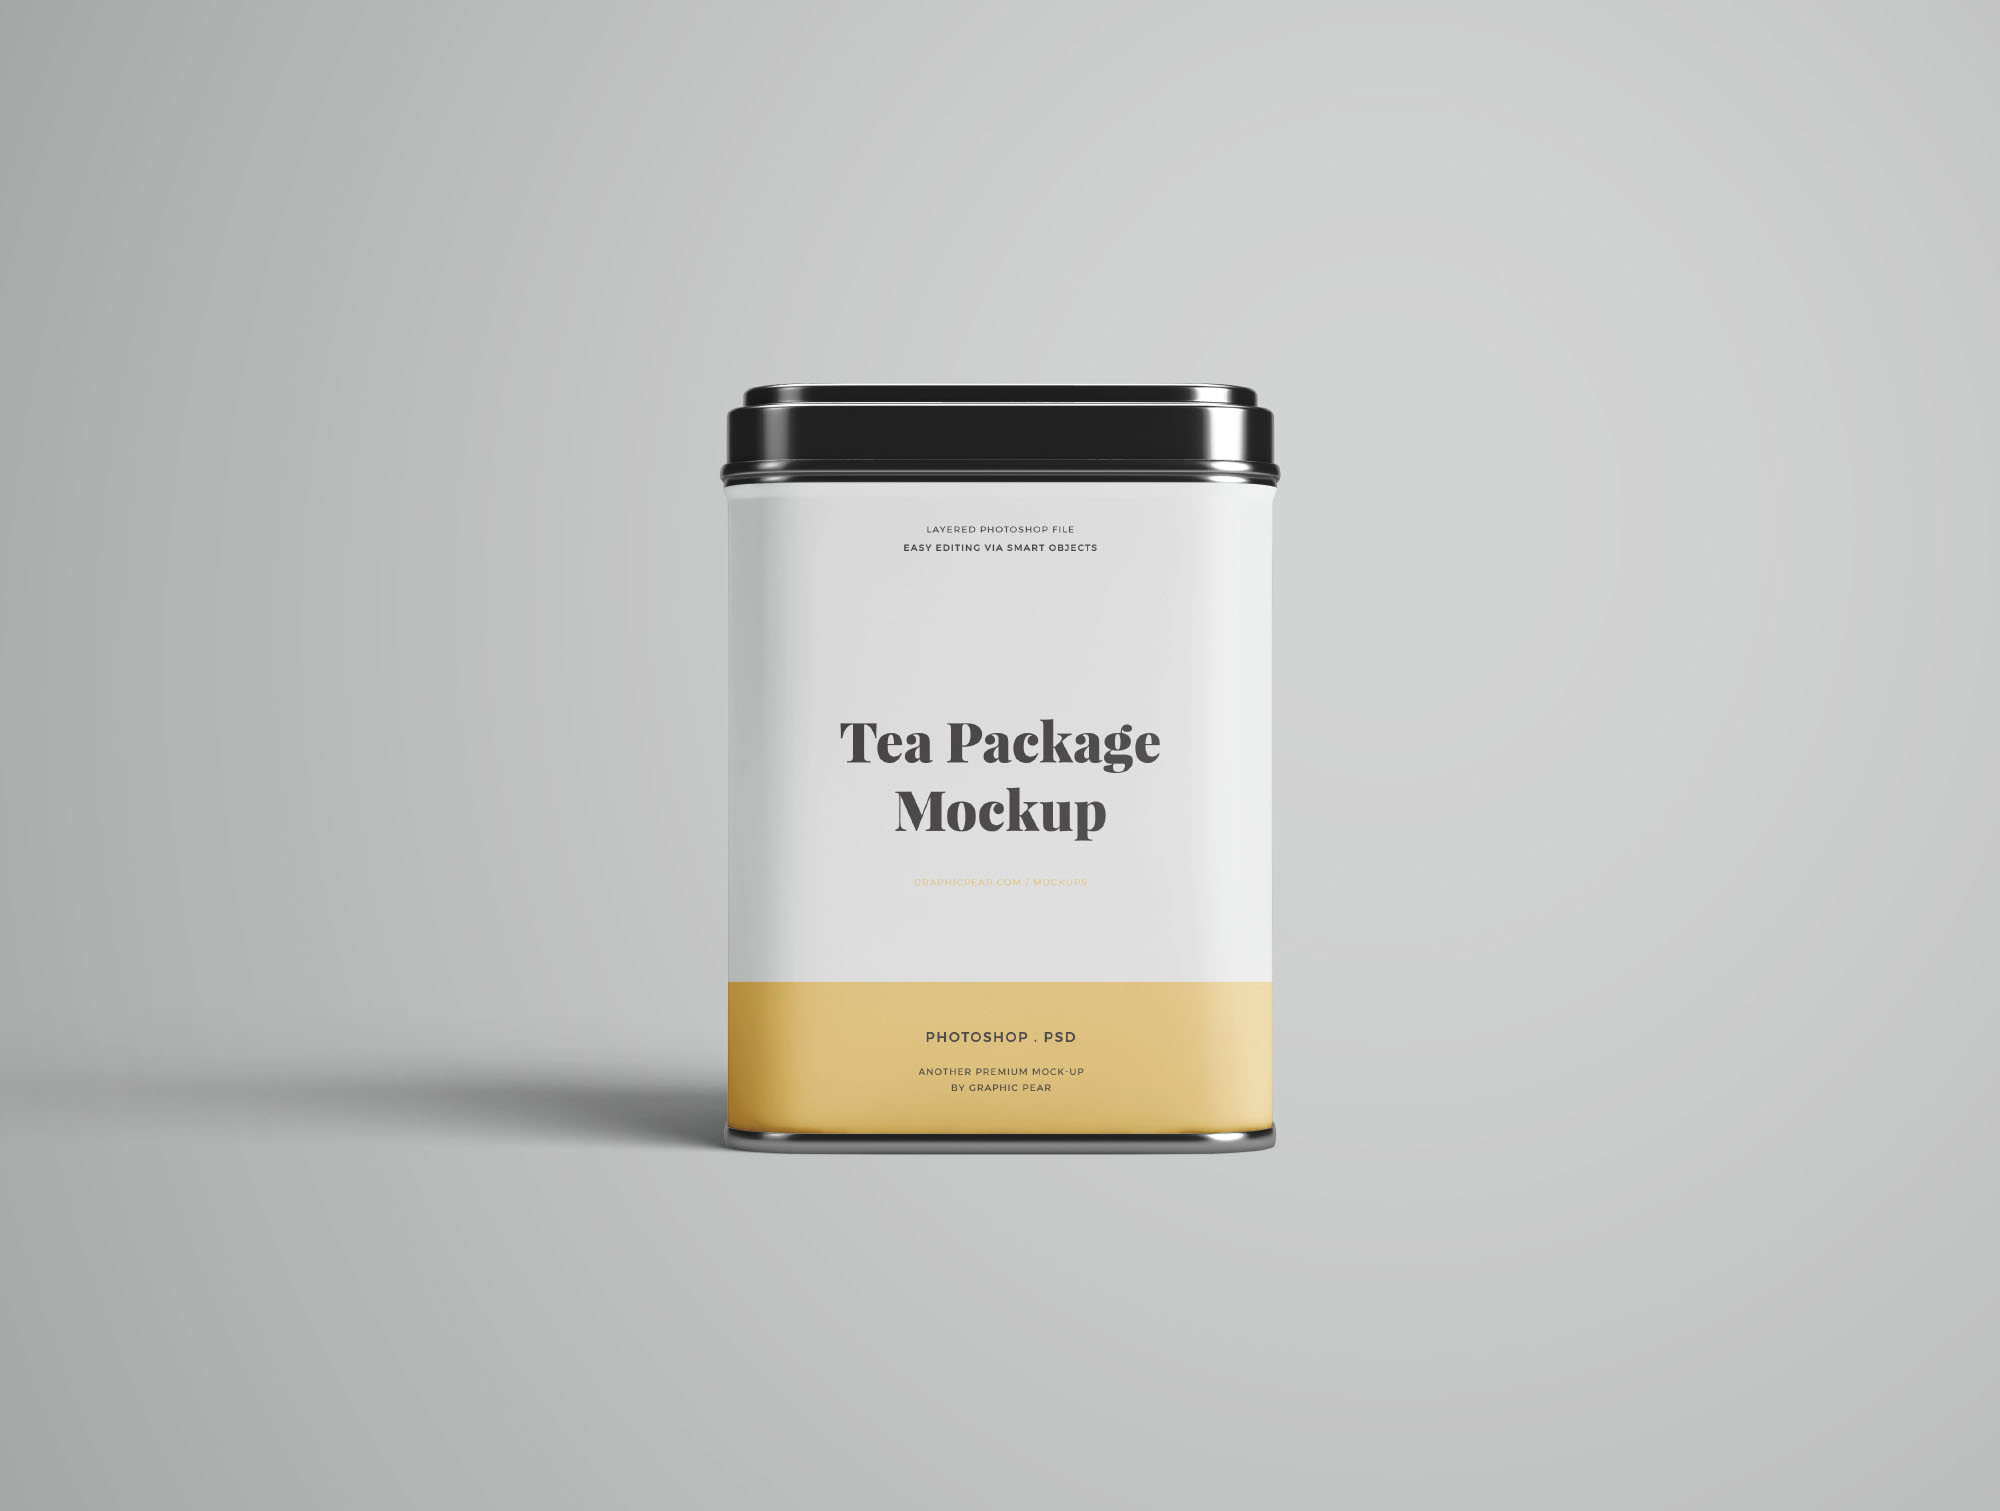 Tea Package Mockup